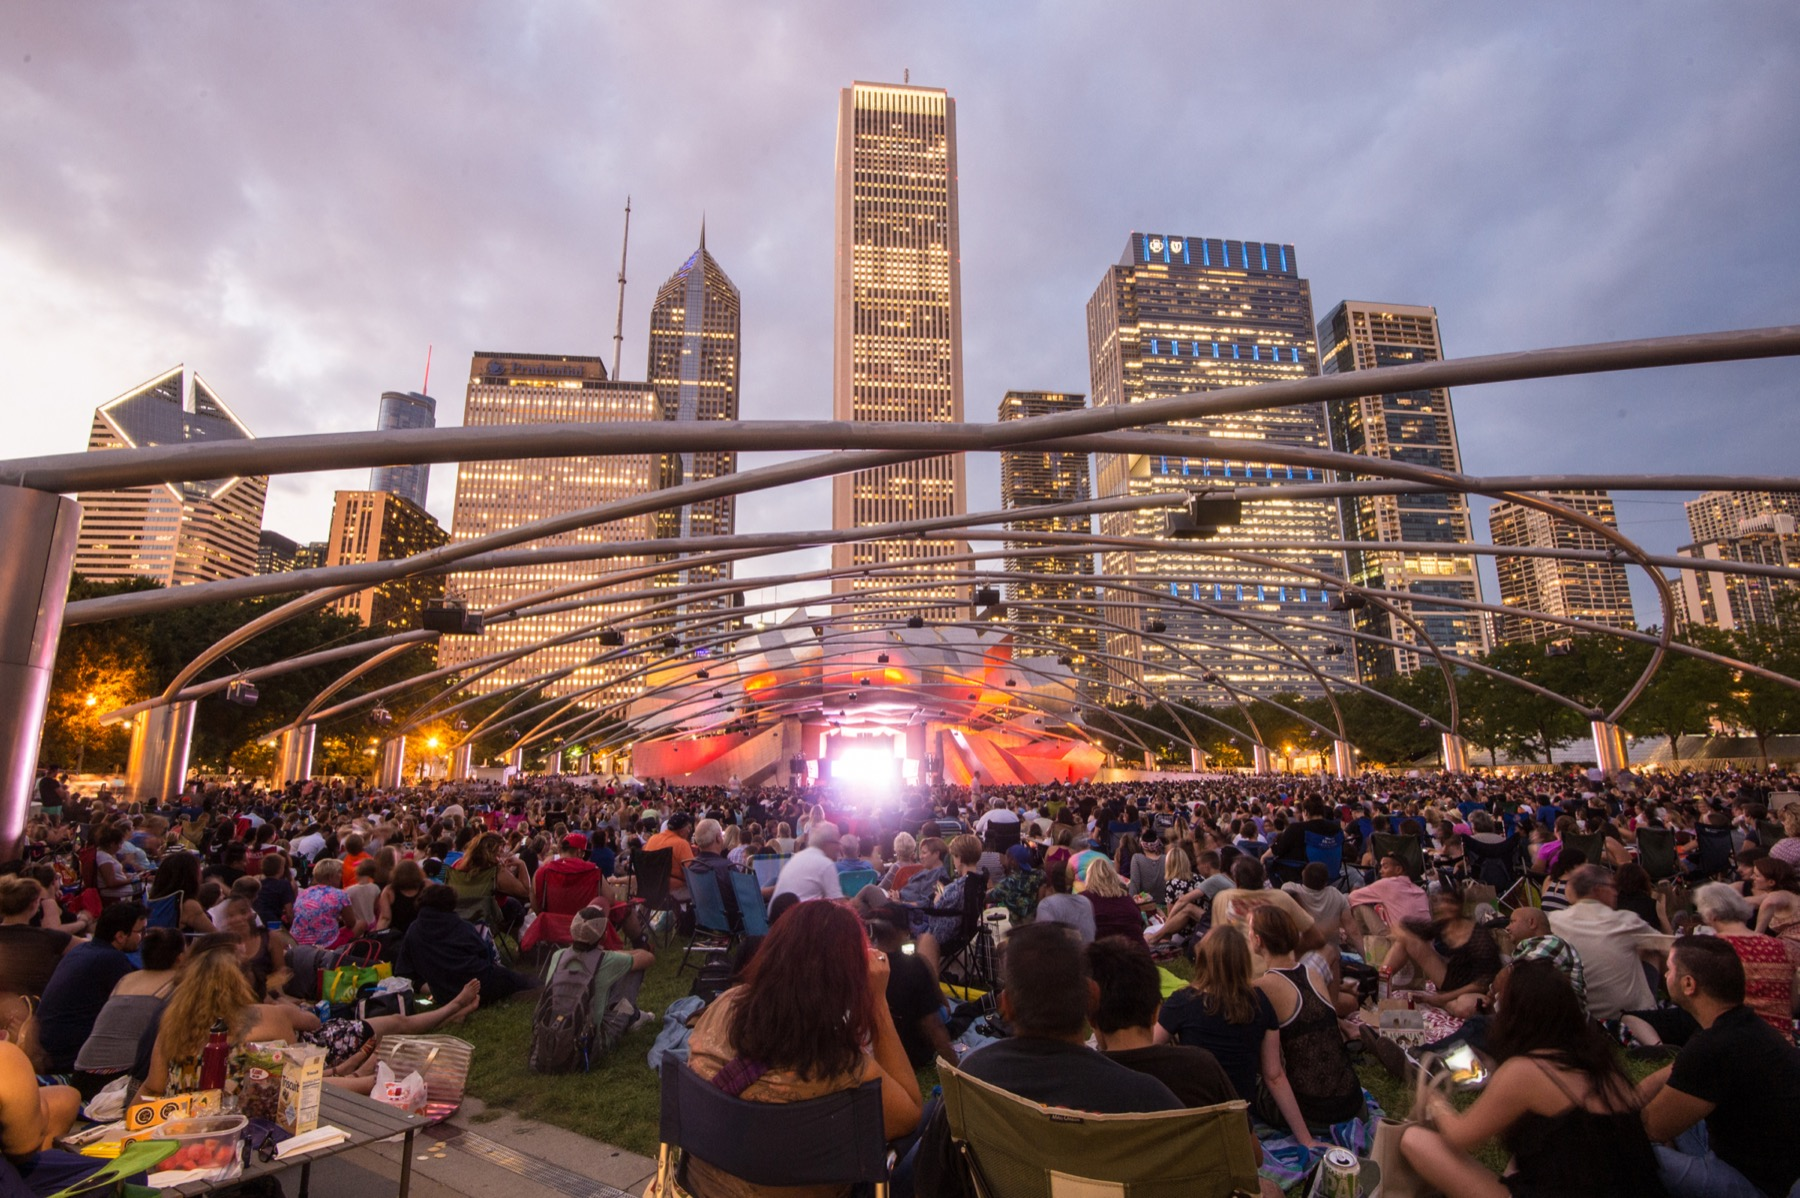 Enjoy free theatre events in Chicago all summer long